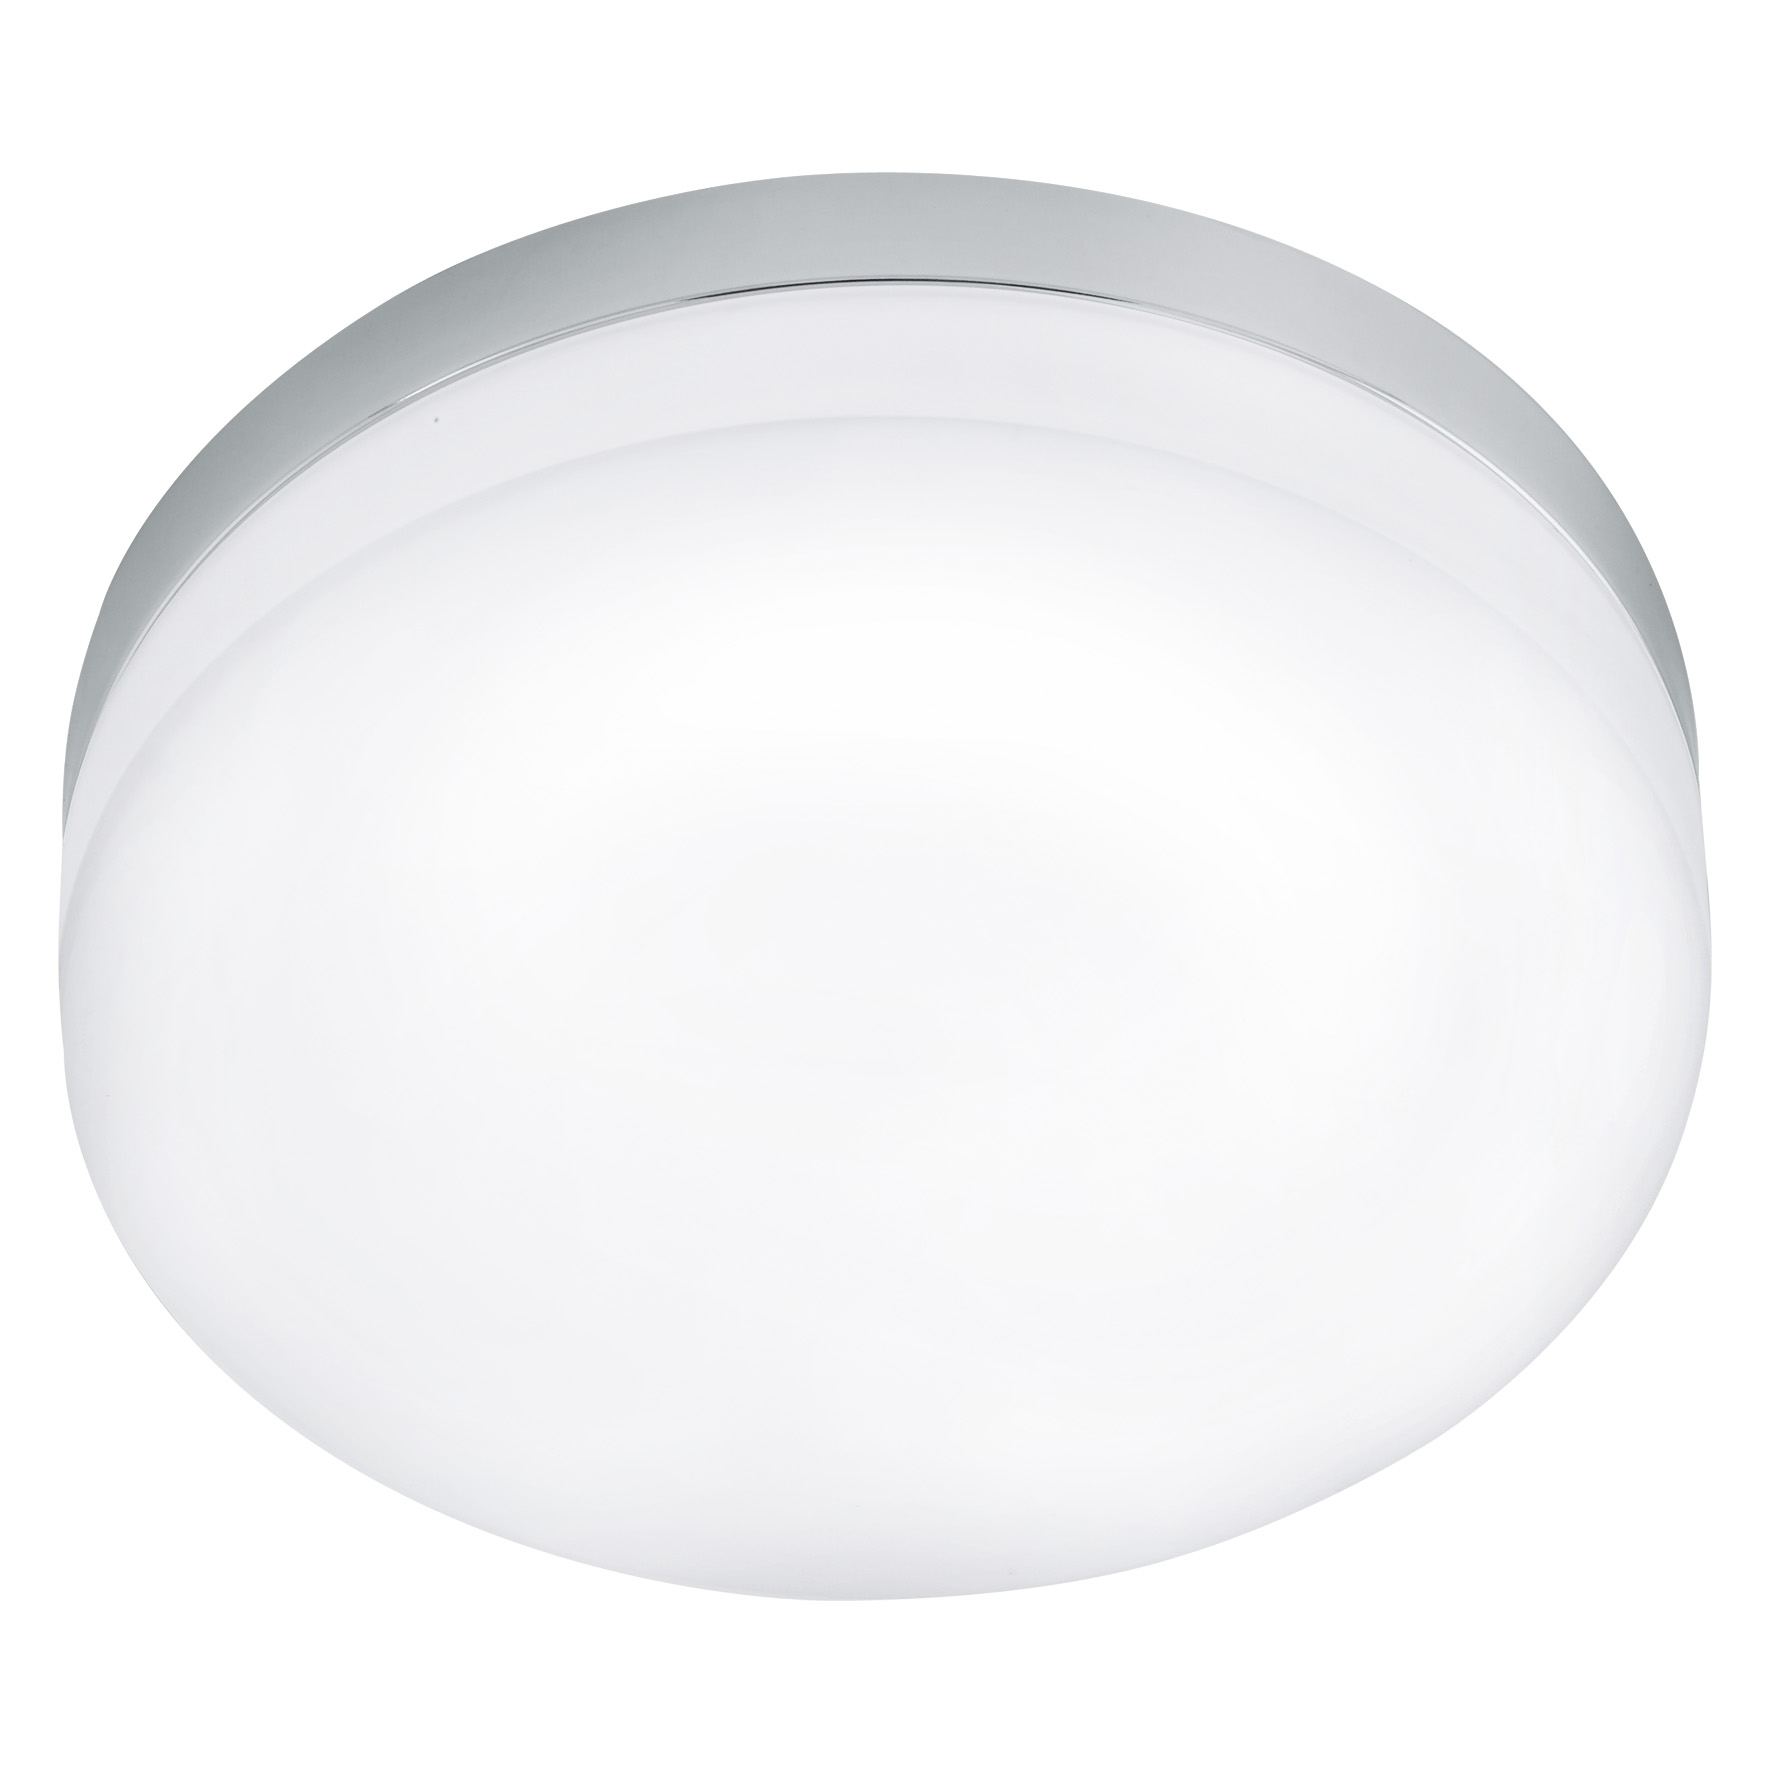 10 adventages of Led bathroom lights ceiling | Warisan Lighting